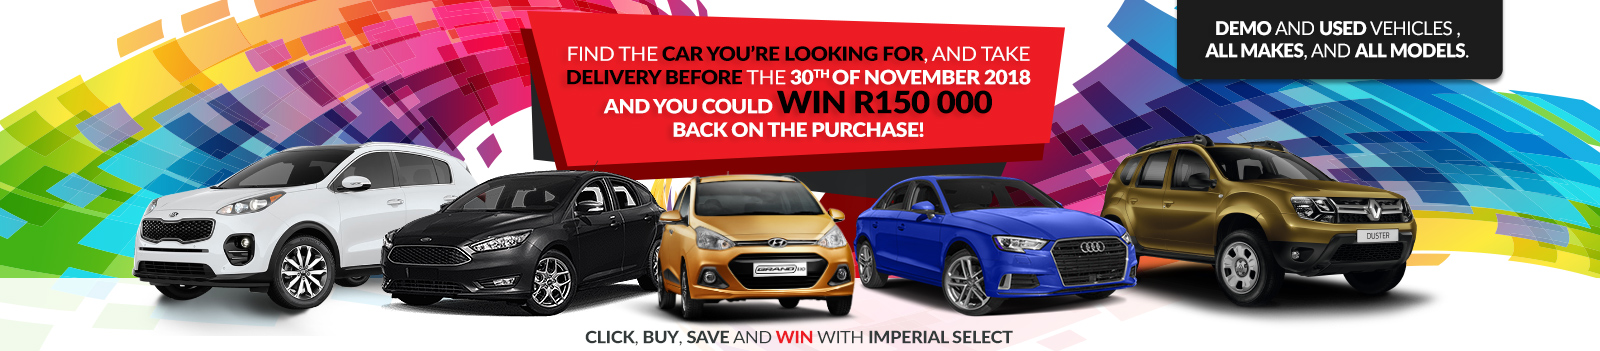 Find the car you're looking for, and take delivery before the 30th November 2018 and you could win R150,000 back on your purchase! Demo, and used vehicles, all makes and all models